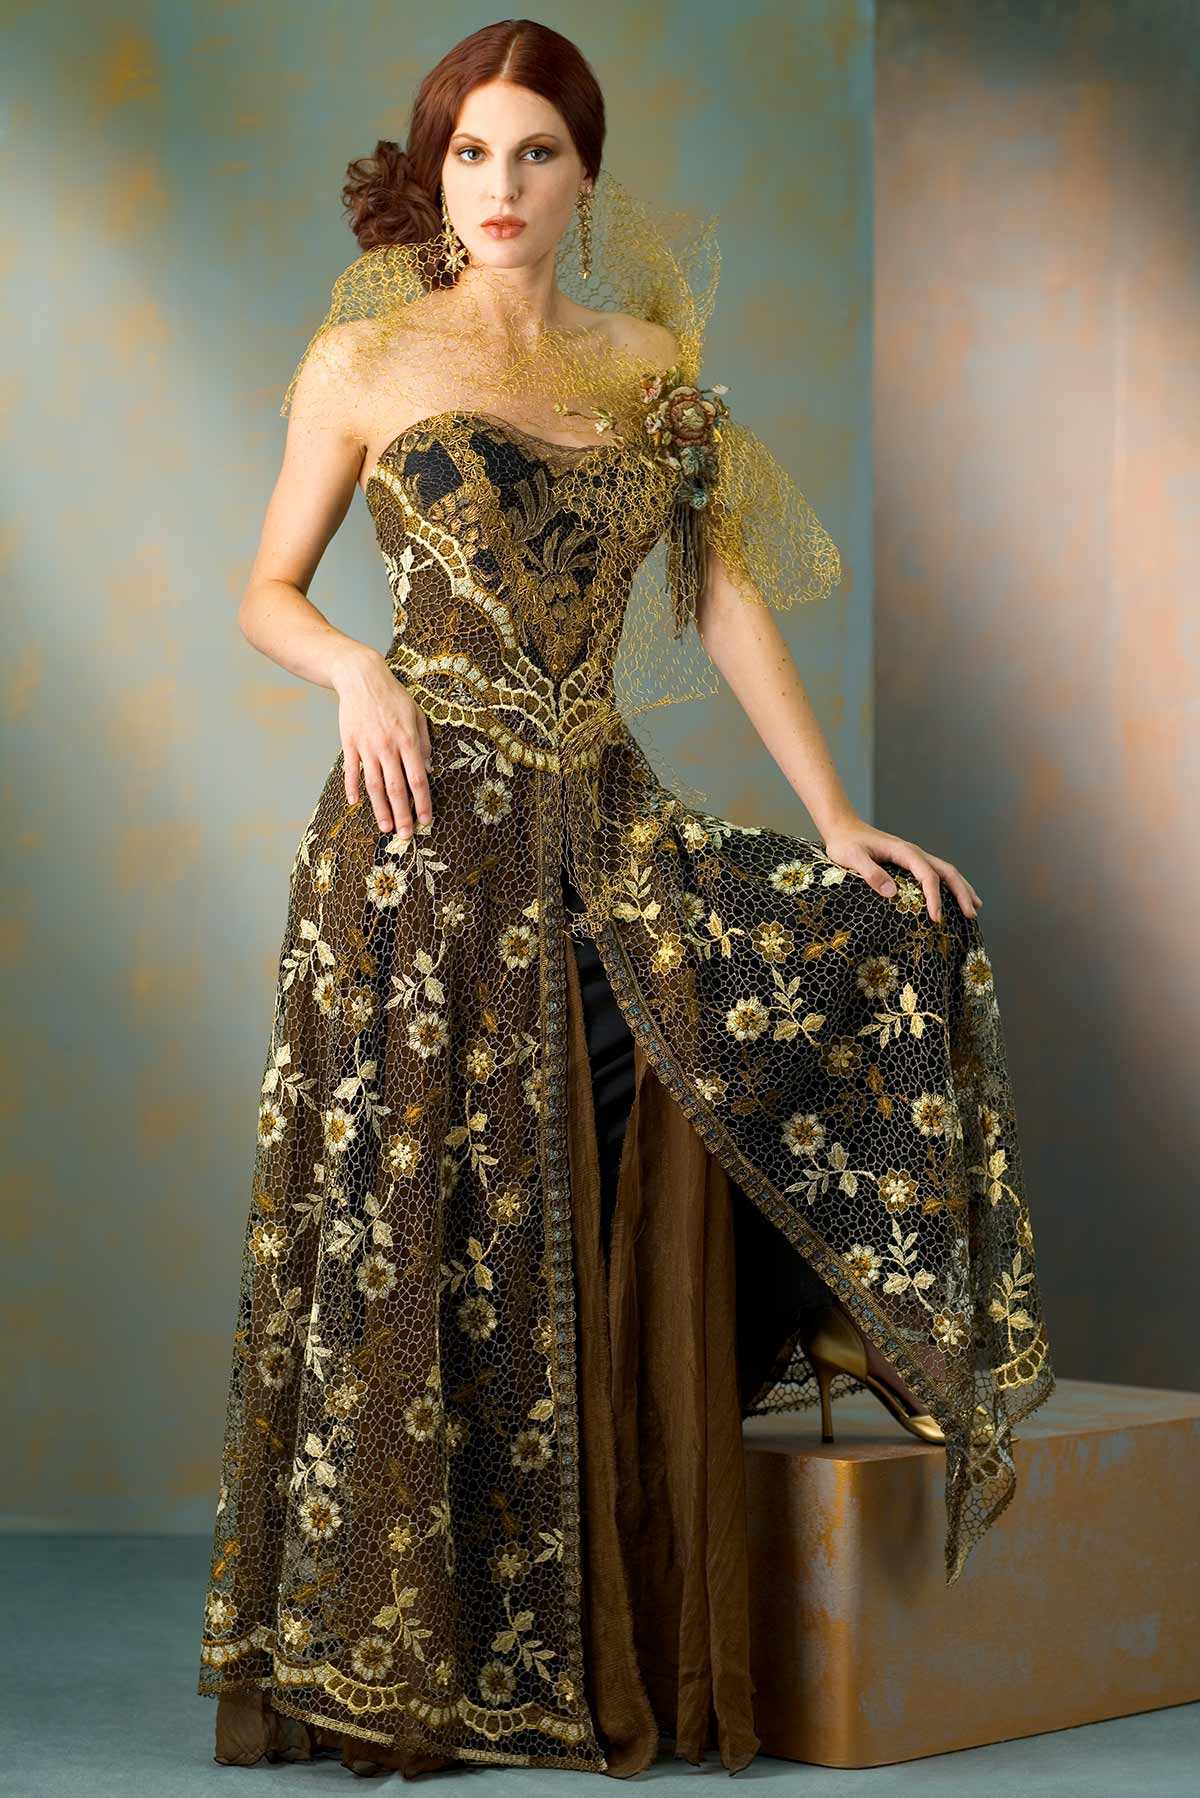 Polished-Bronze_Constance-McCardle Fashion Design | Photography: Rick Luettke